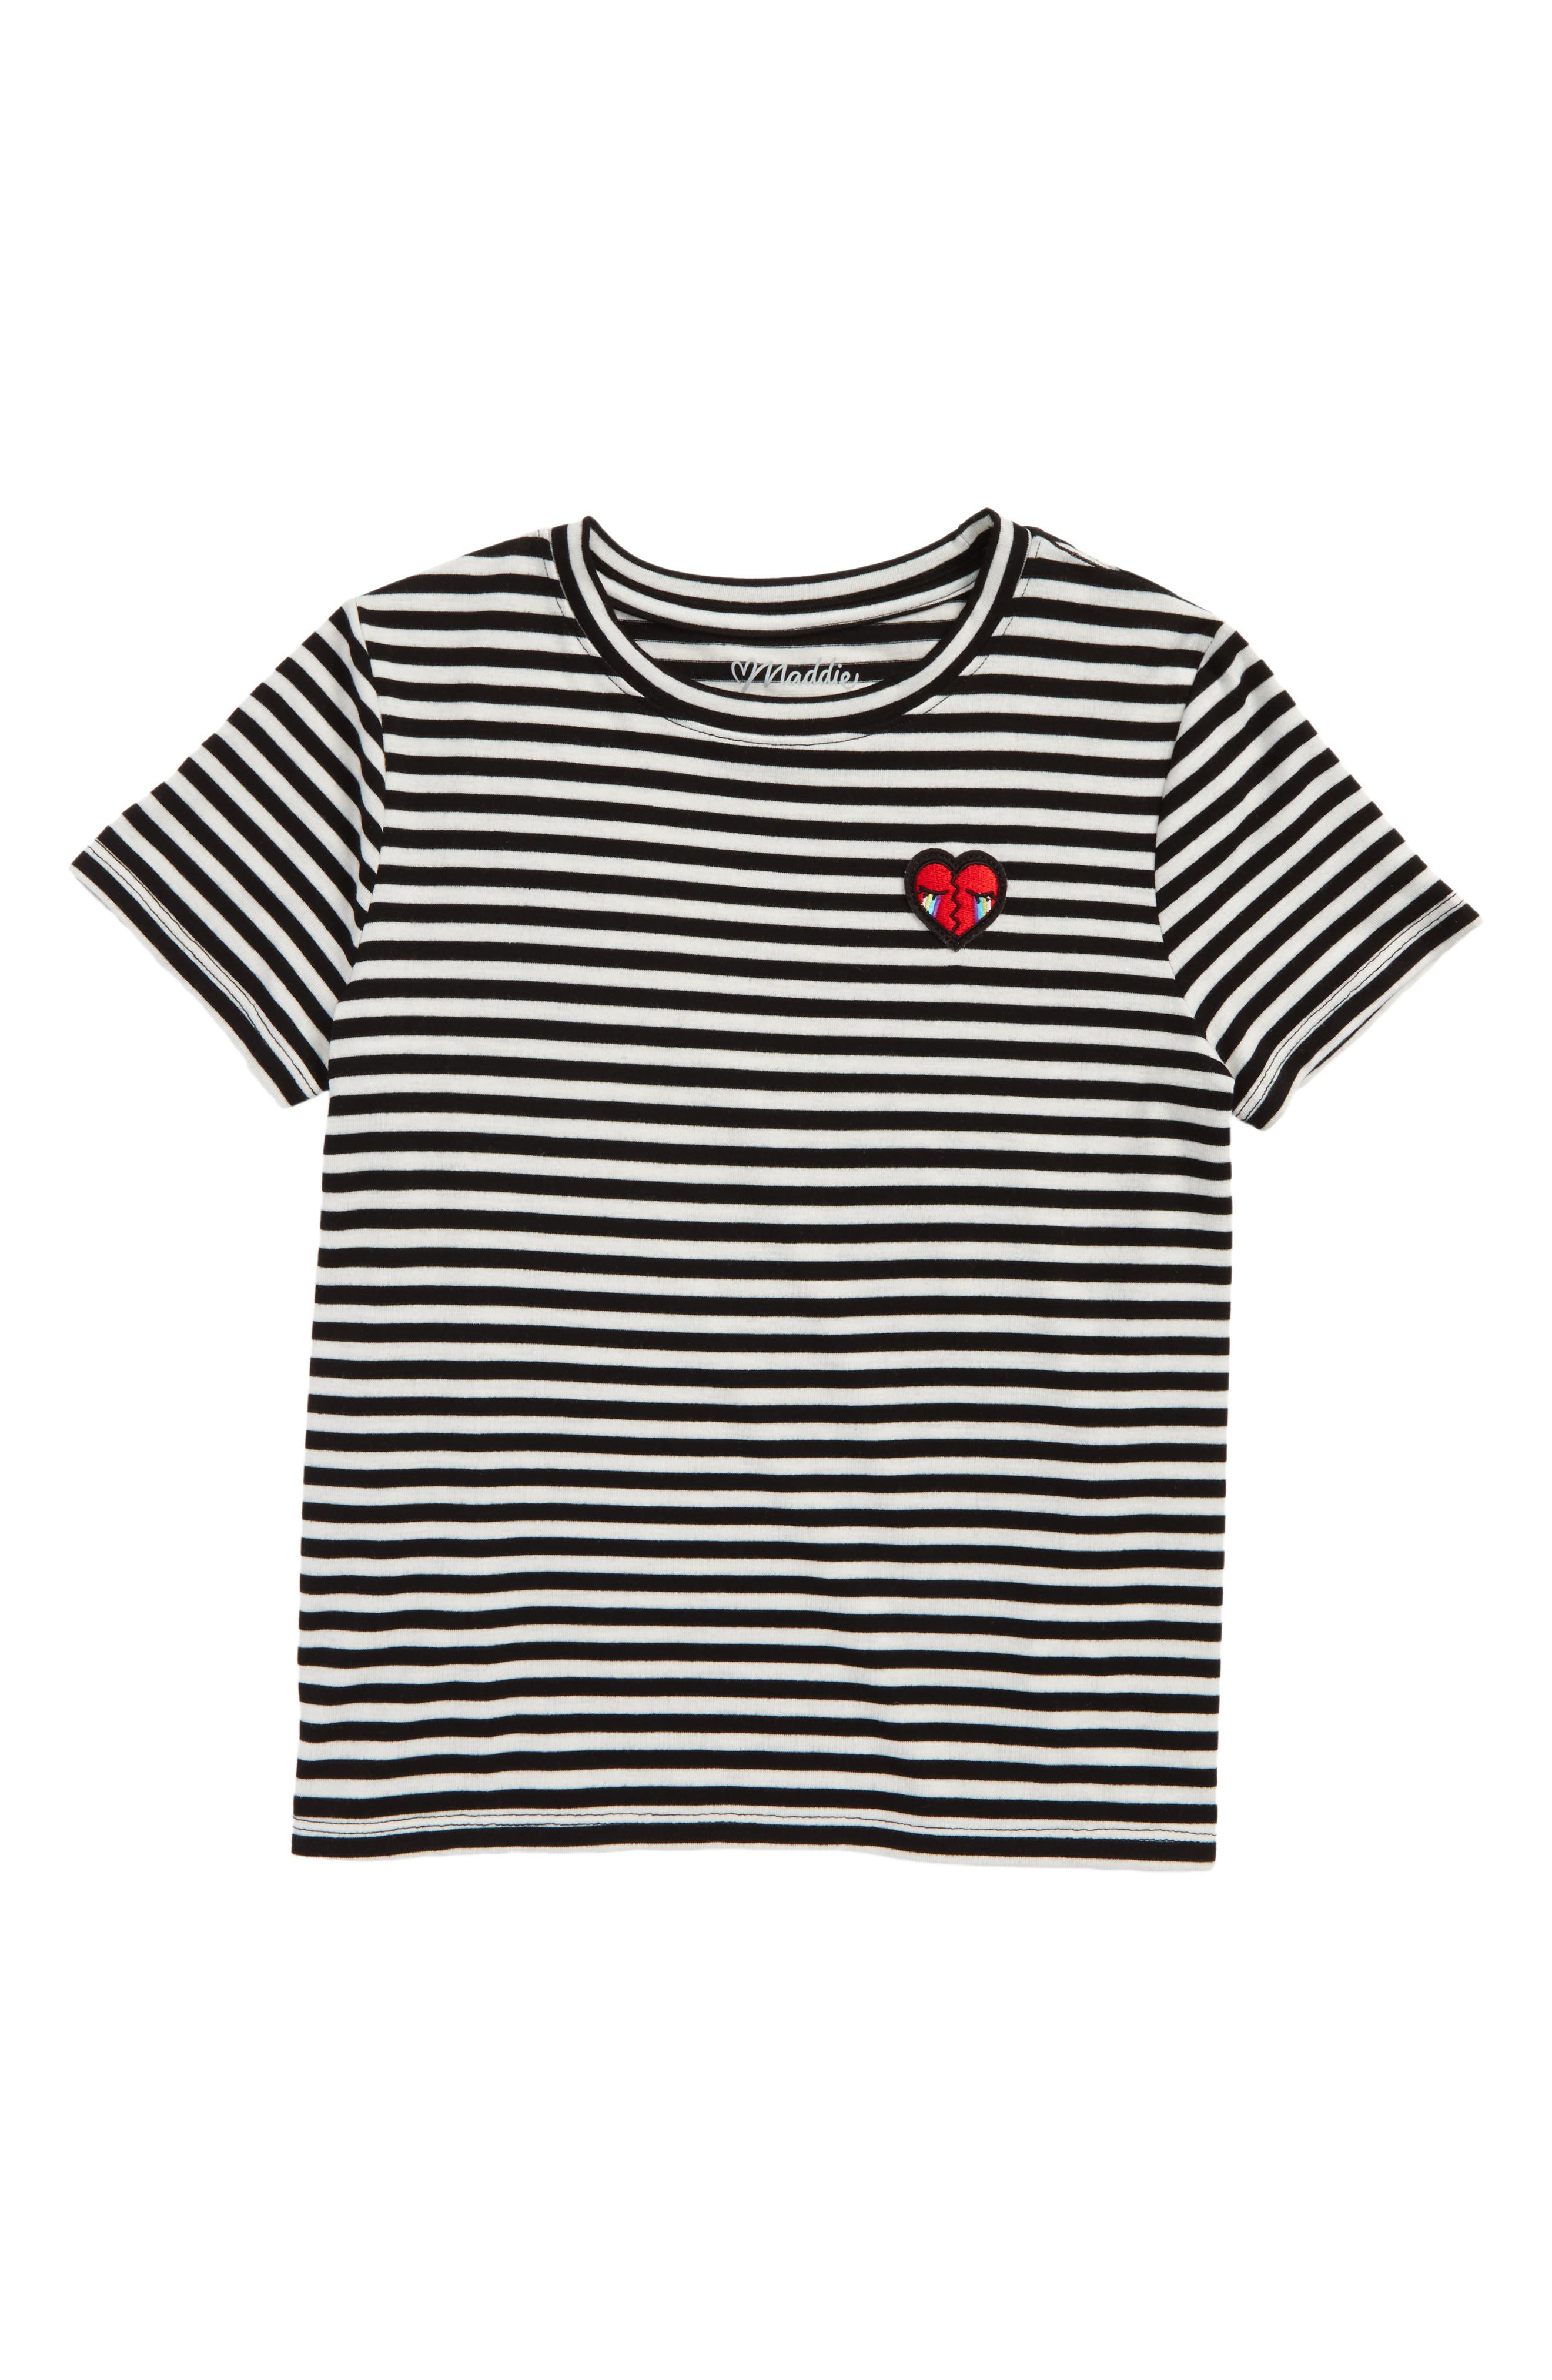 Heart Patch Stripe Tee,                         Main,                         color, Black/ White